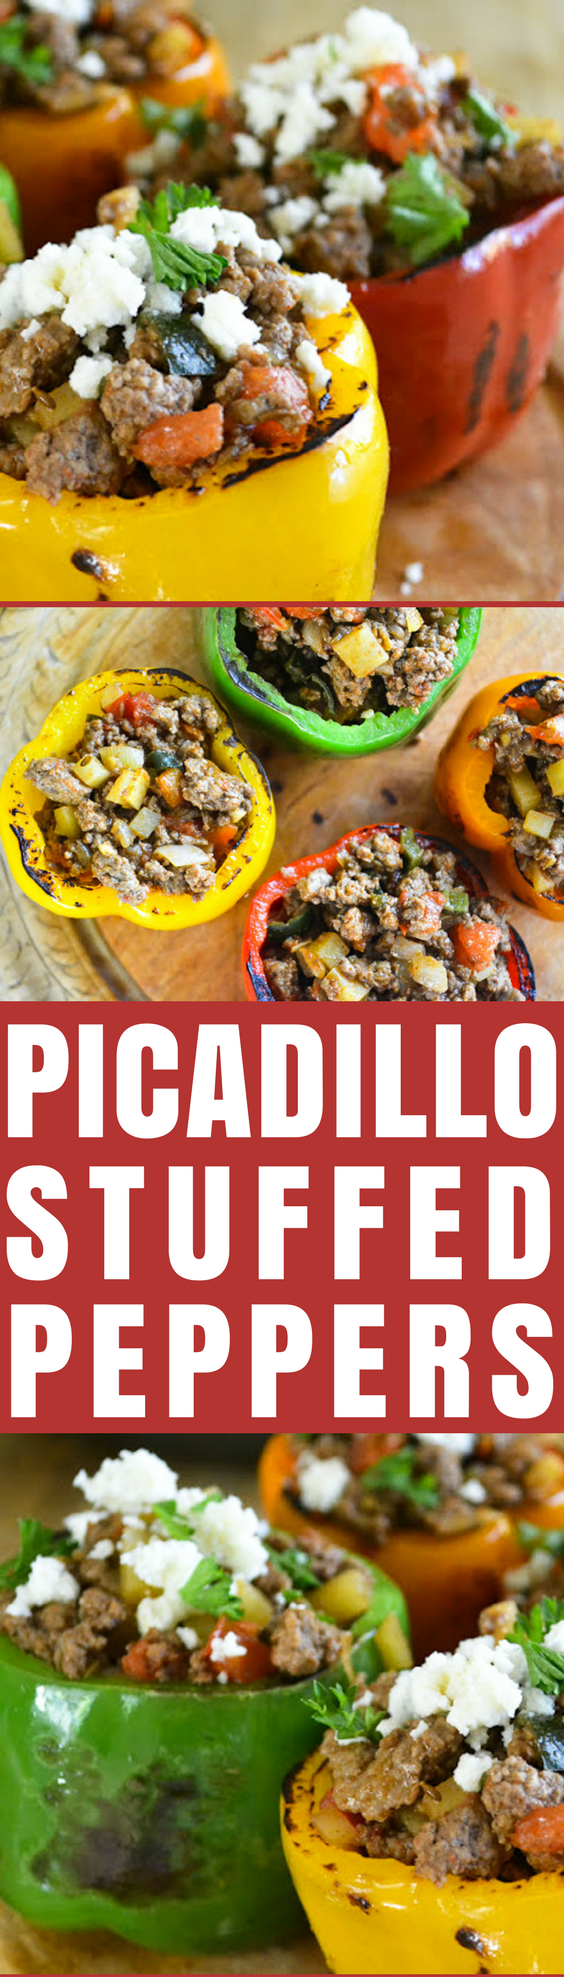 Stuffed Bell Peppers with Picadillo ~ these colorful bell peppers stuffed with a spiced ground beef, and topped with creamy queso fresco cheese are a Mexican classic that pleases the whole family. #stuffedpeppers #Mexicanrecipe #beststuffedpeppers #groundbeef #beefitswhatsfordinner #comfortfood #rainbow